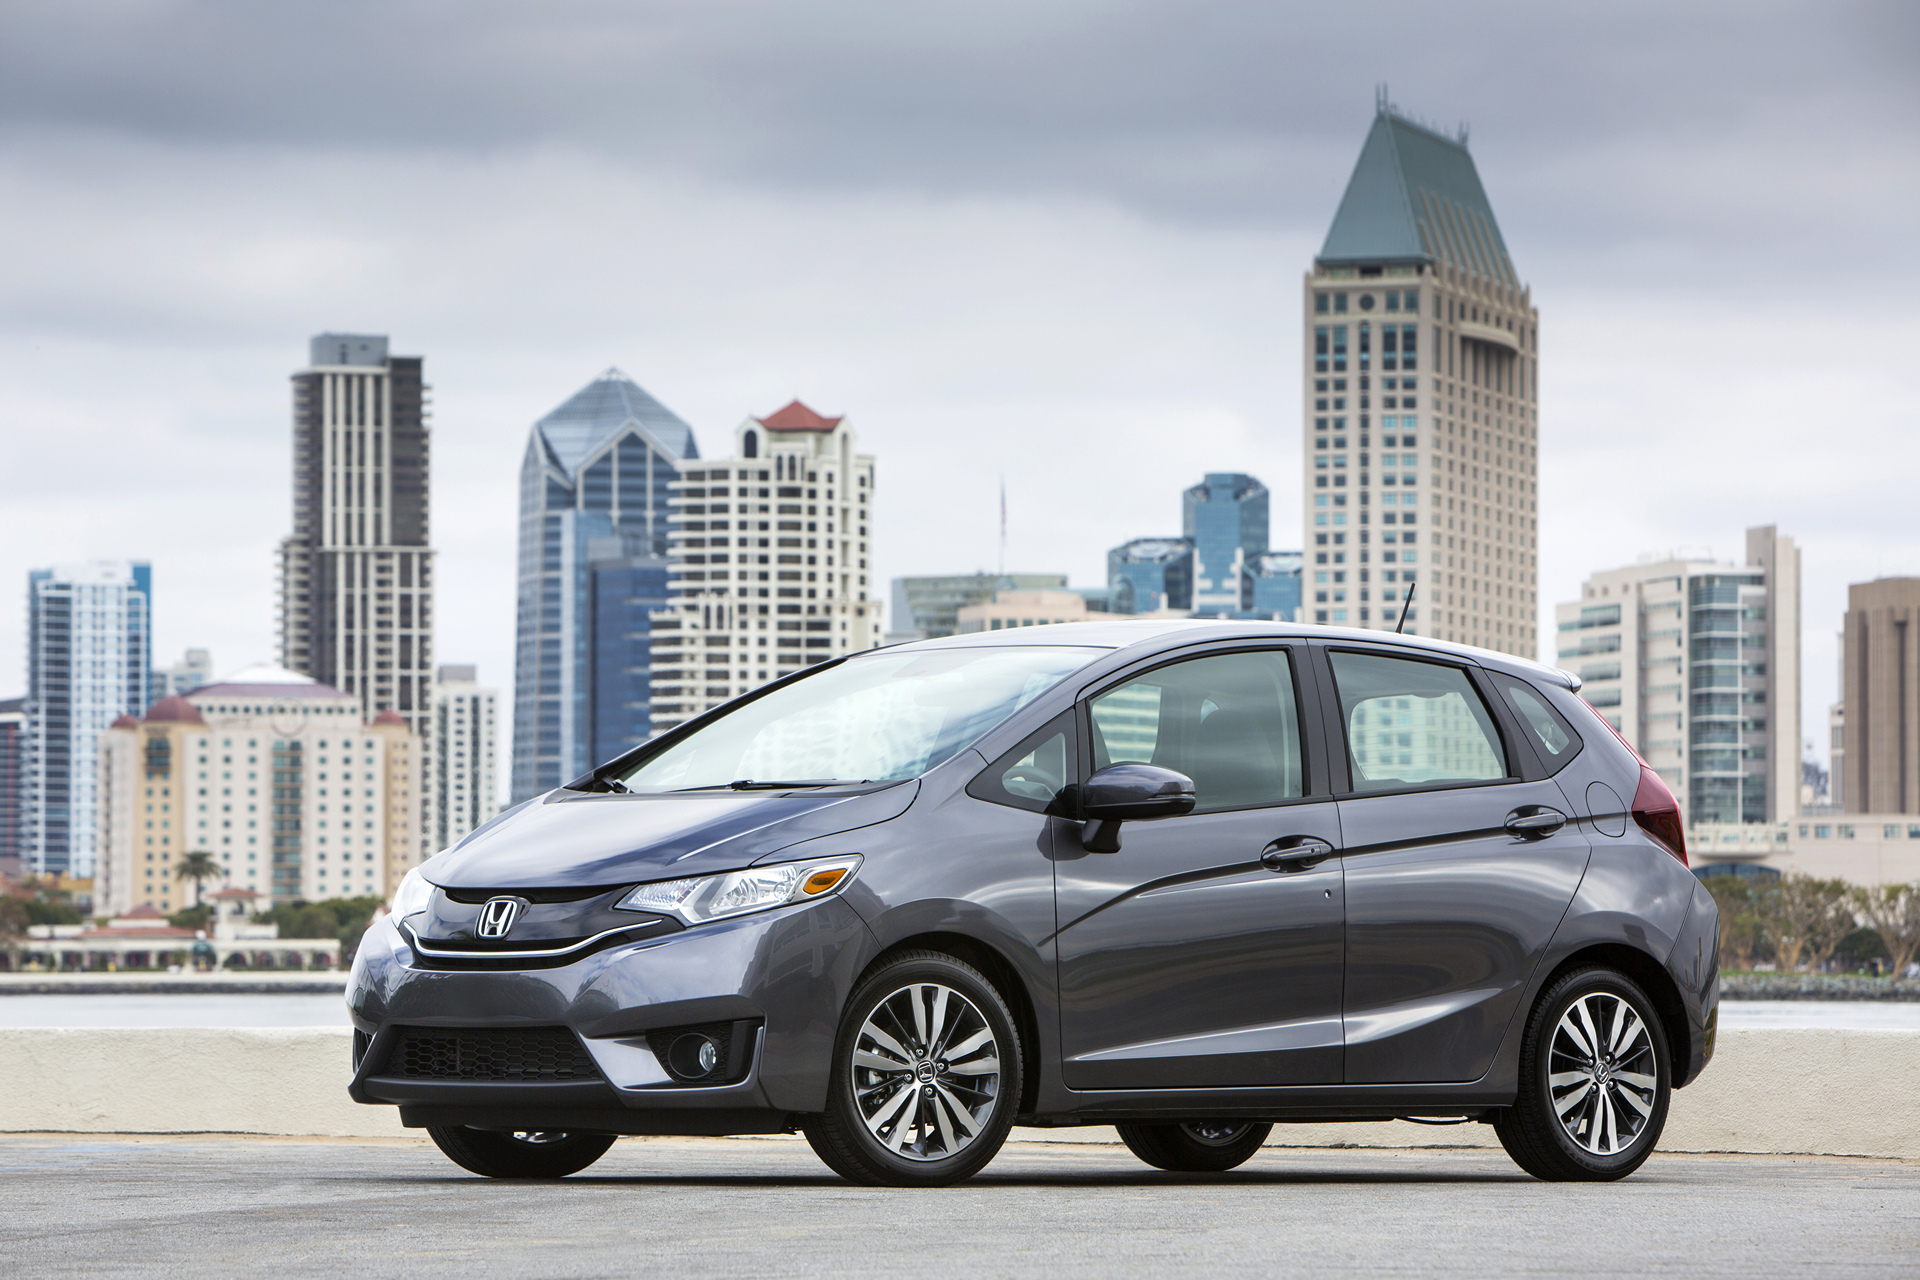 Best Subcompact Cars for 2016-2017